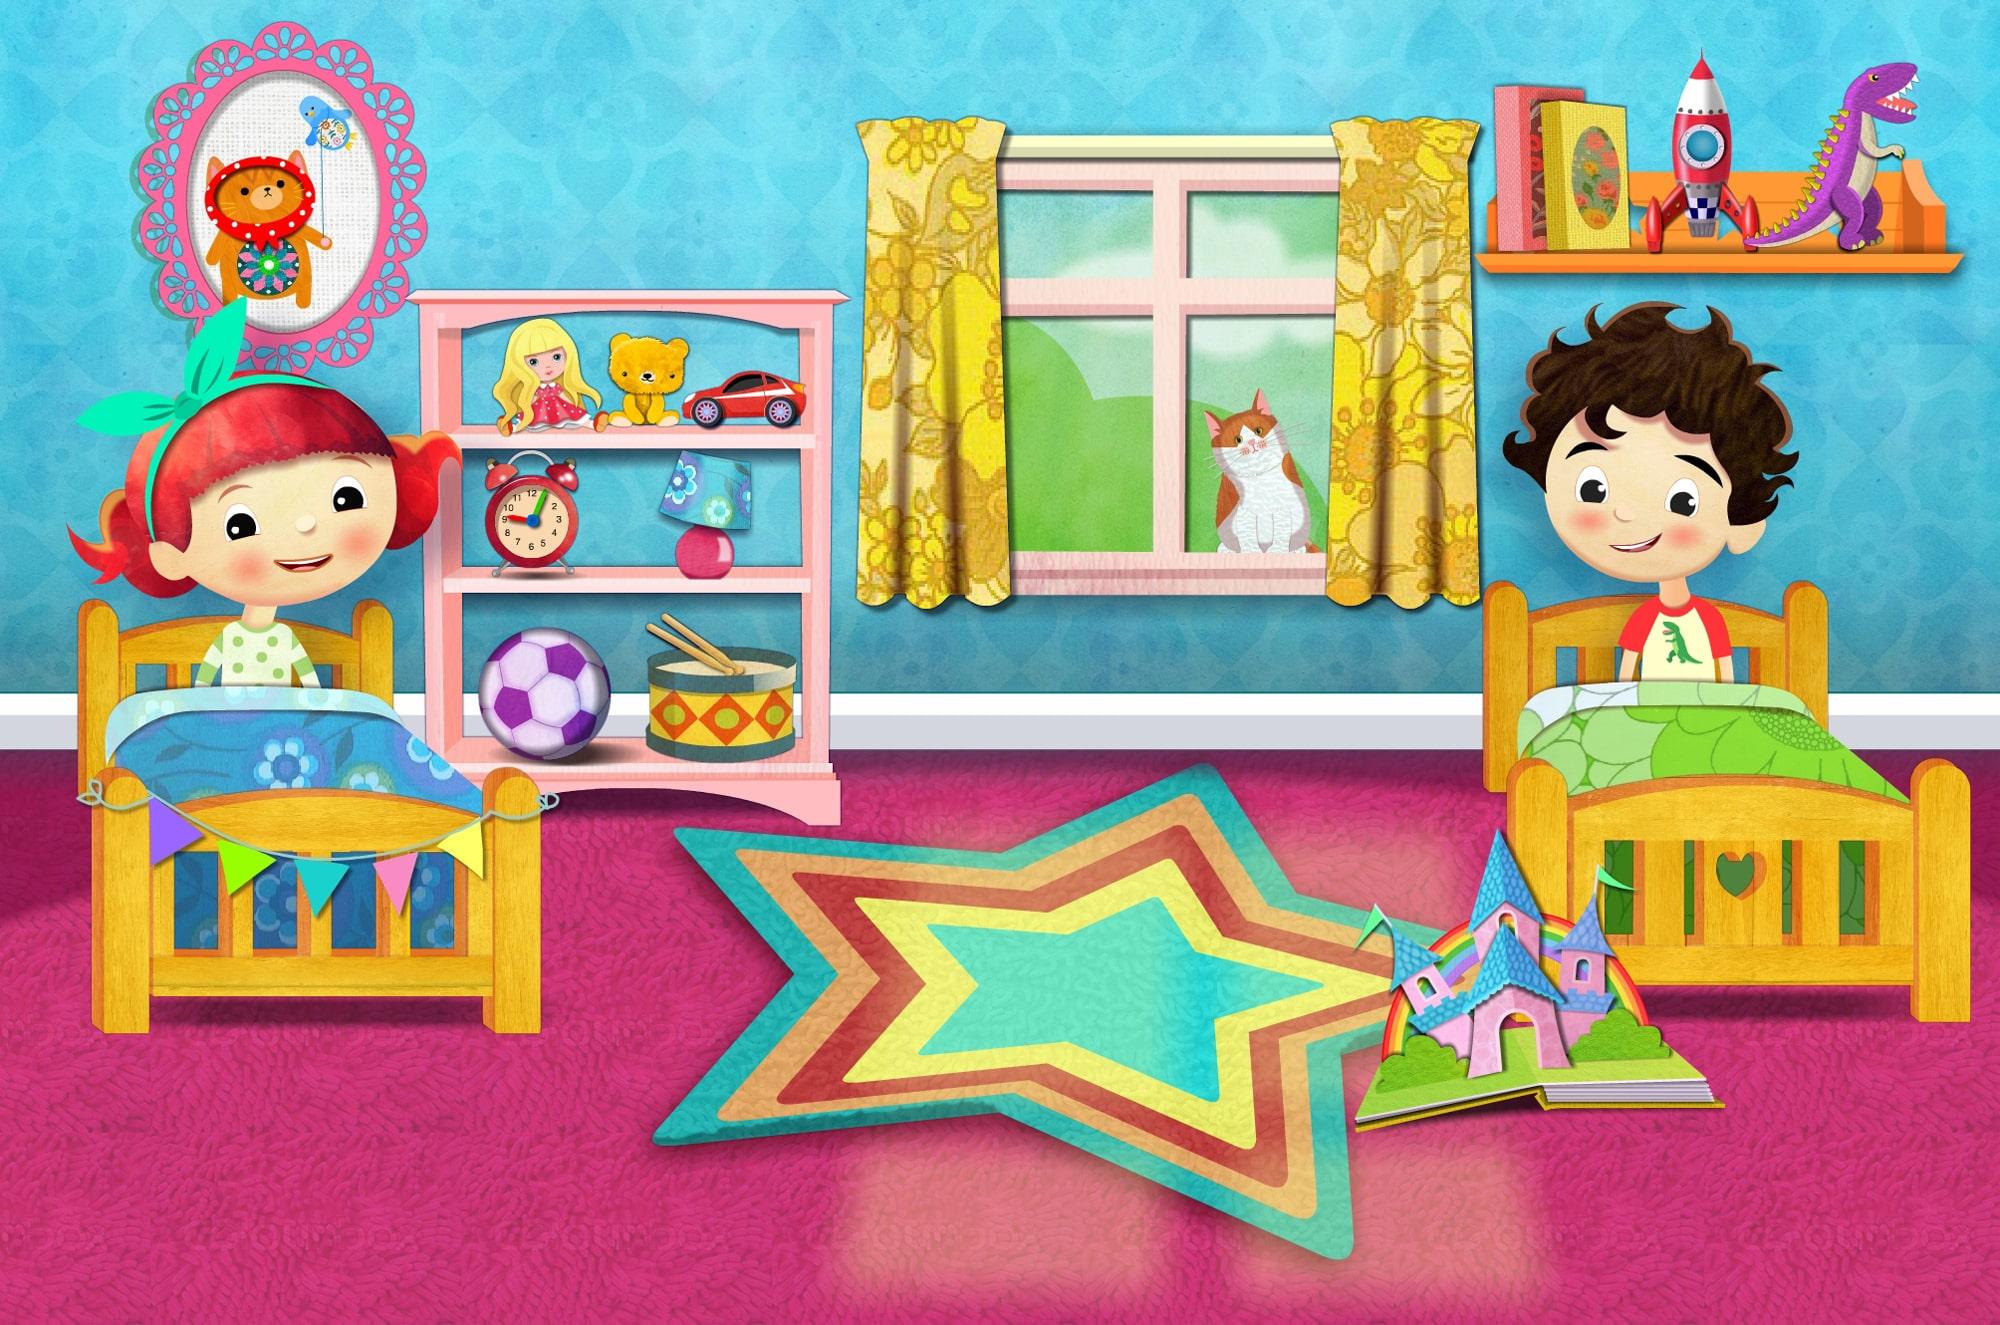 Kids in their bedroom app illustration